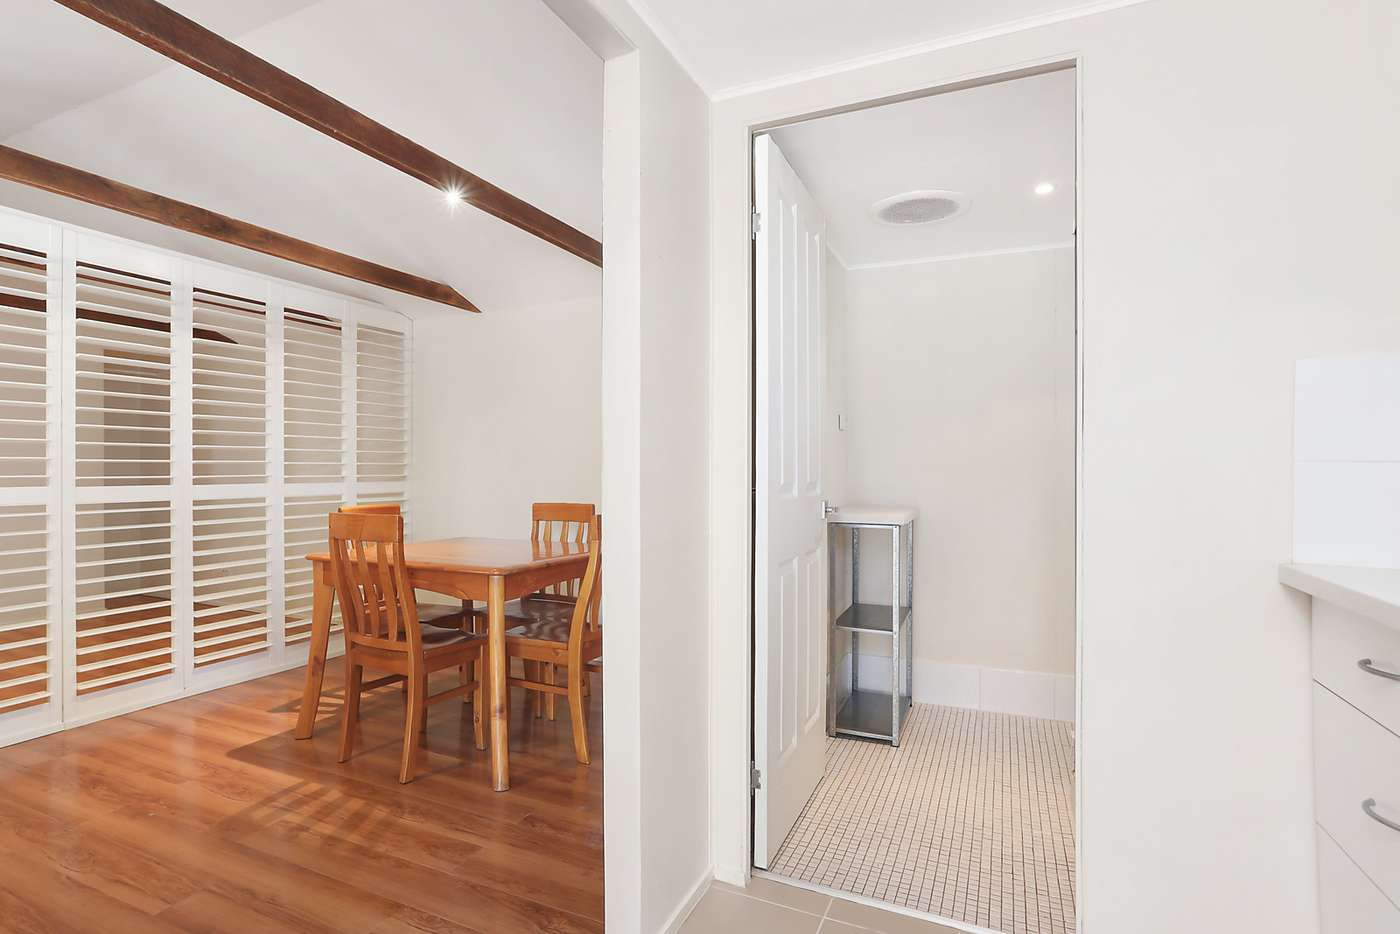 Fifth view of Homely house listing, 3 Daffodil Street, Marayong NSW 2148